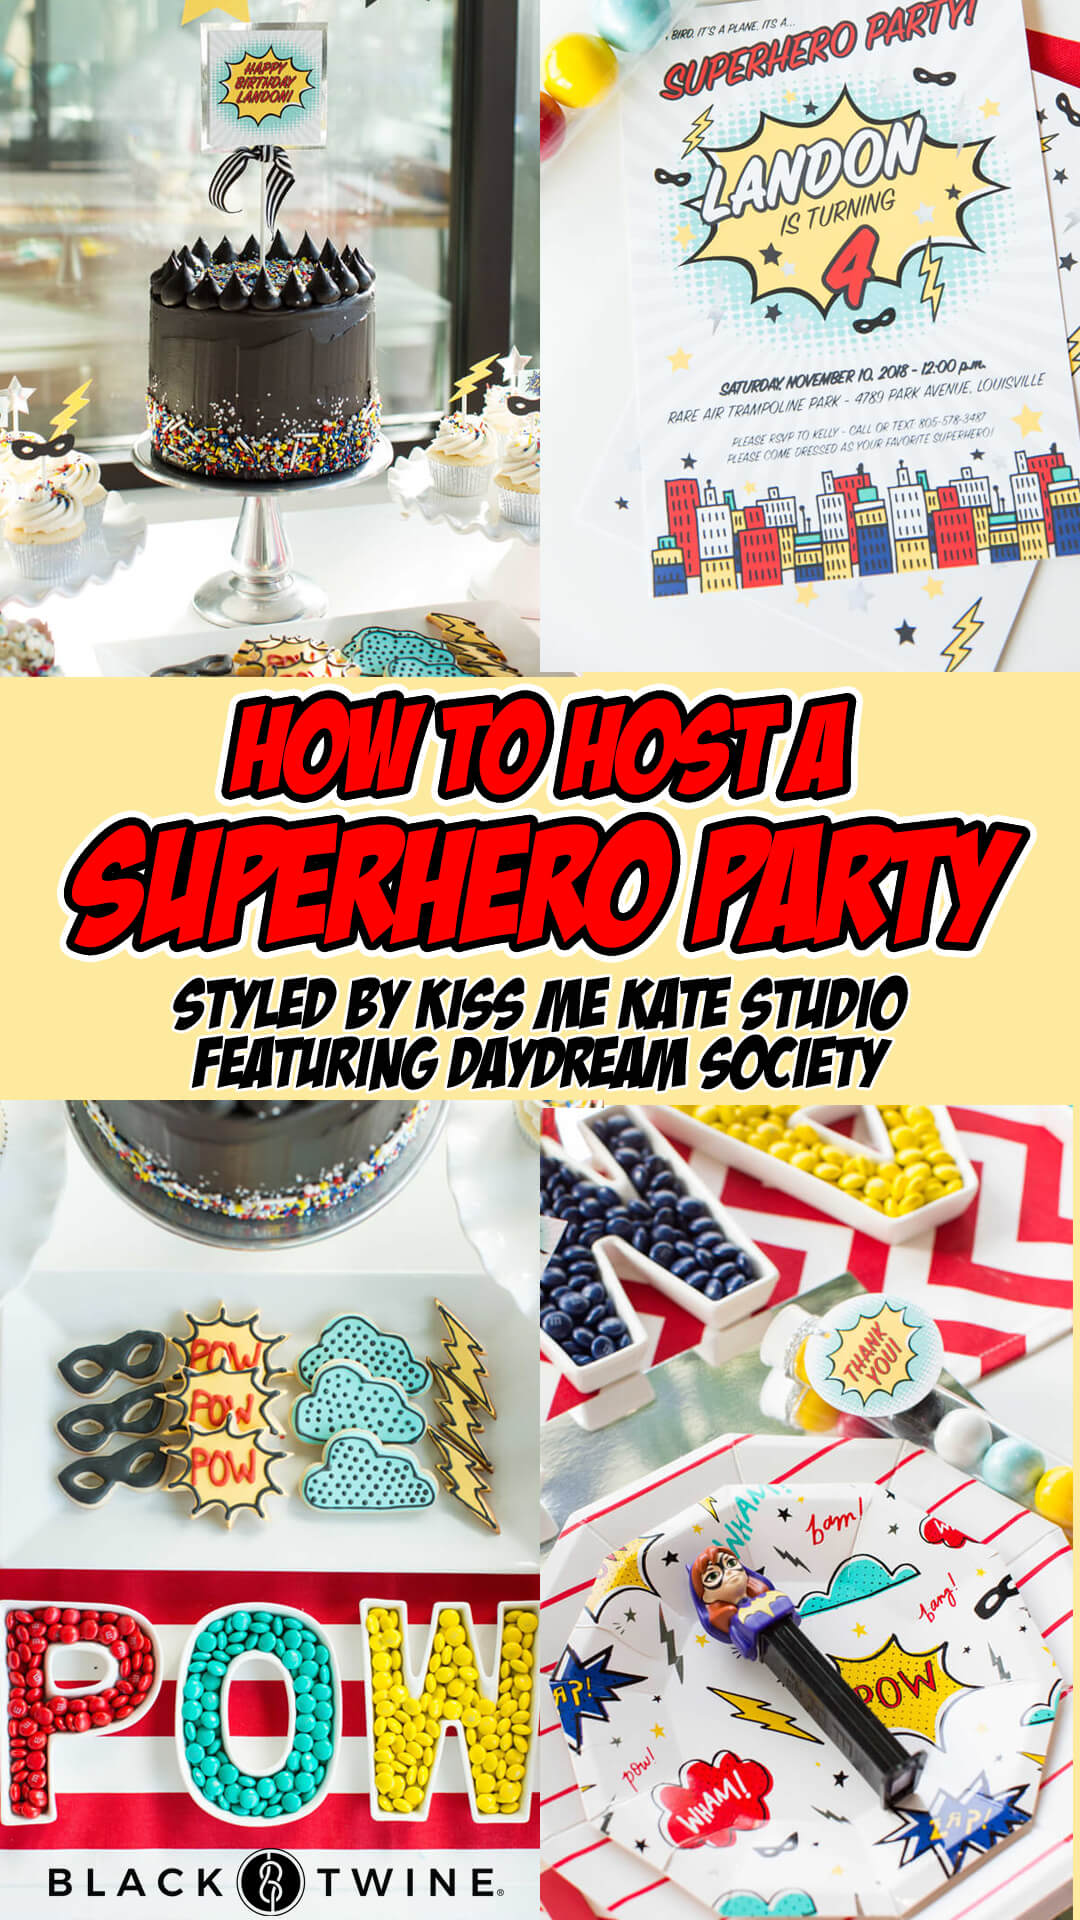 Collage from Superhero Party by Kiss Me Kate Studio | Black Twine